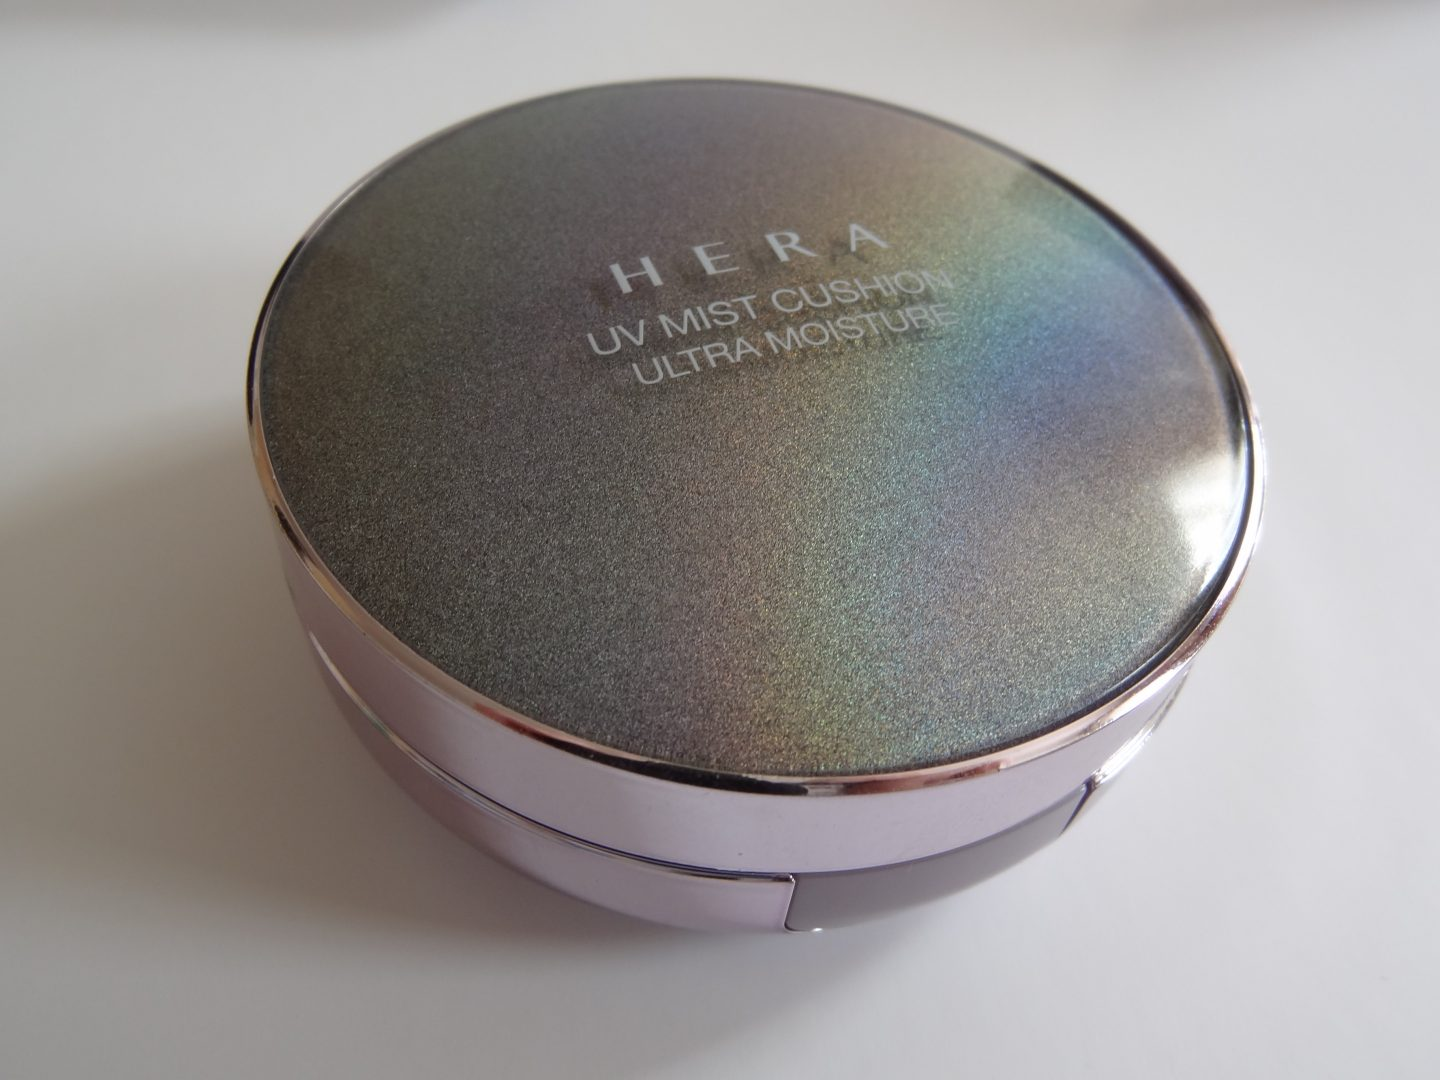 REVIEW: Hera UV Mist Cushion Ultra Moisture (No.21 Cool Vanilla)